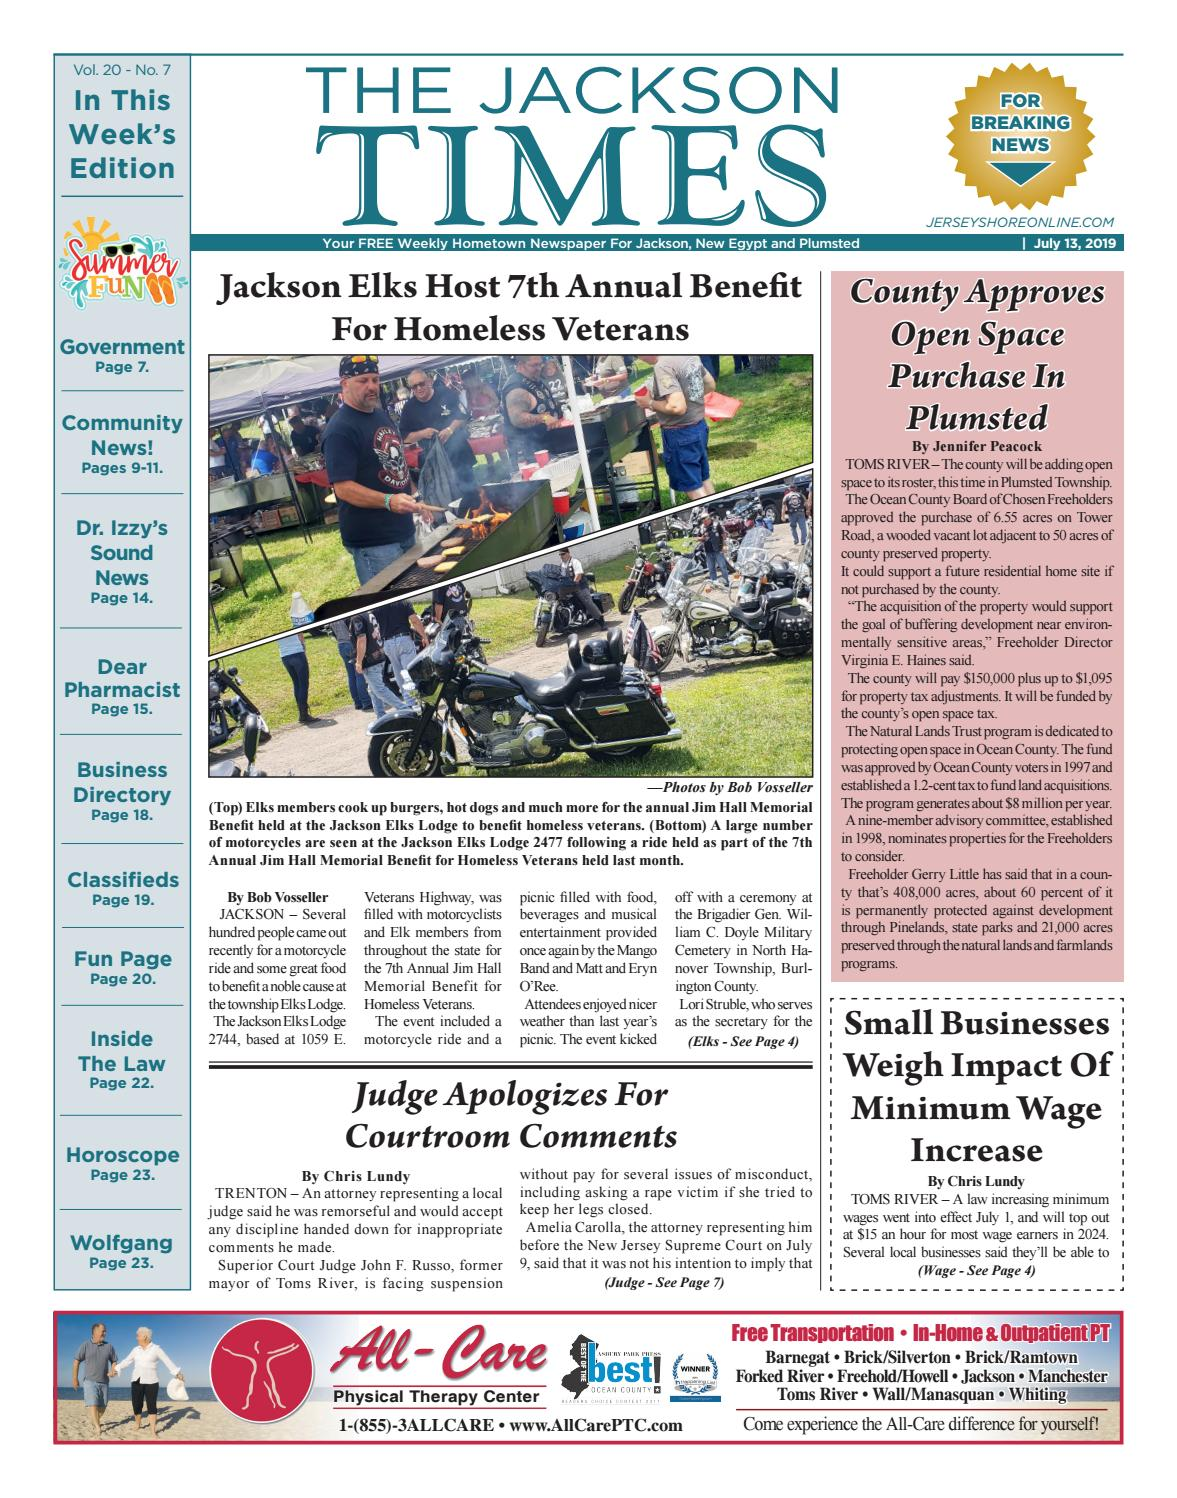 2019-07-13 - The Jackson Times by Micromedia Publications